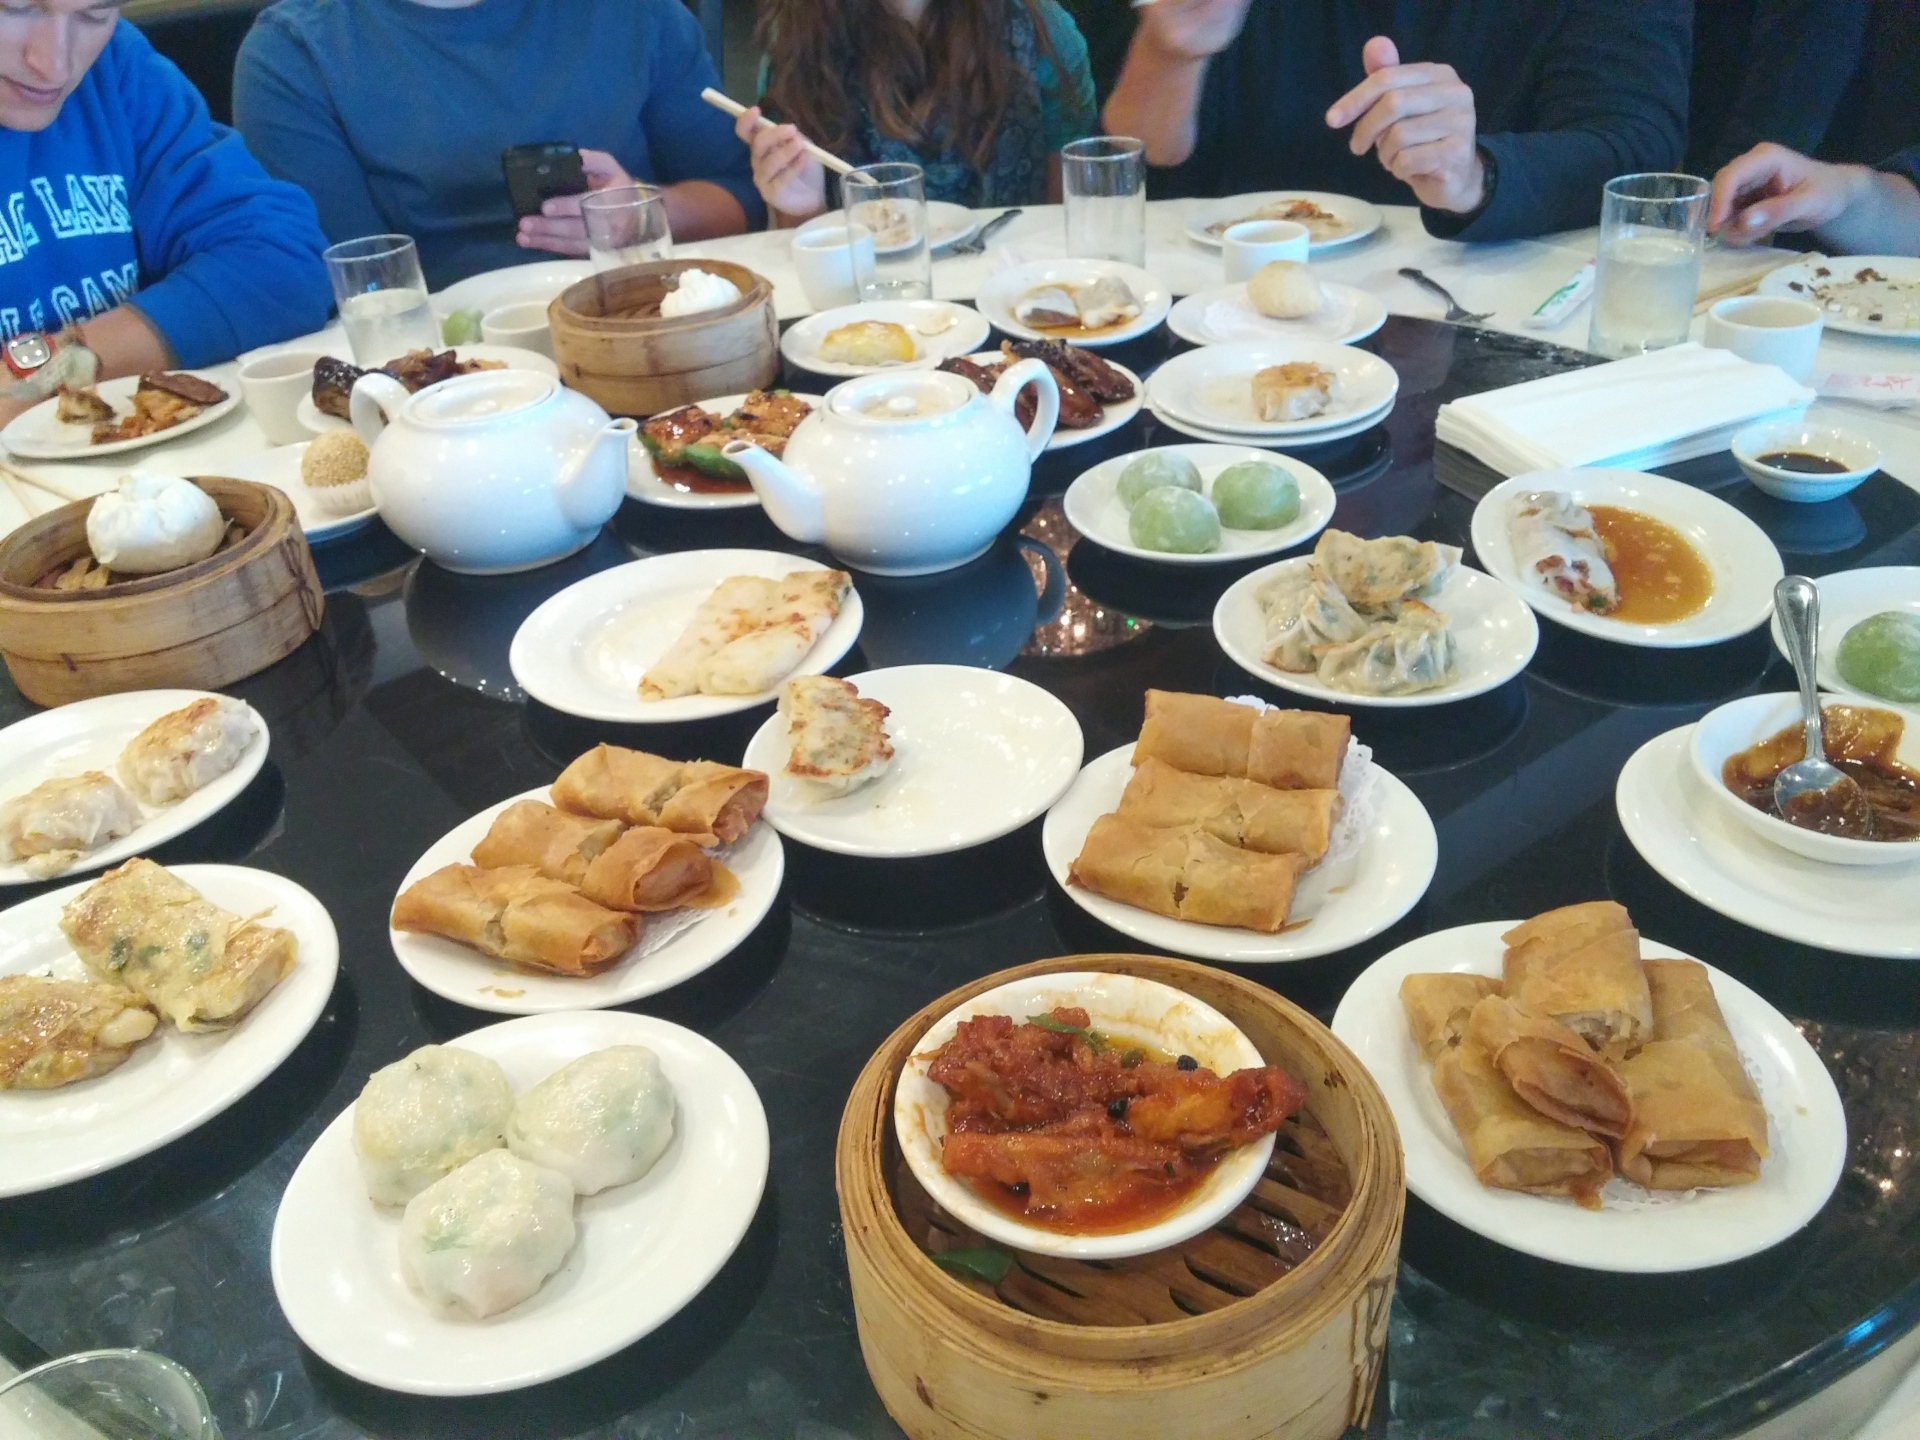 A group of 14 enjoyed Dim Sum at Phoenix Restaurant Photo: Amanda Elliott